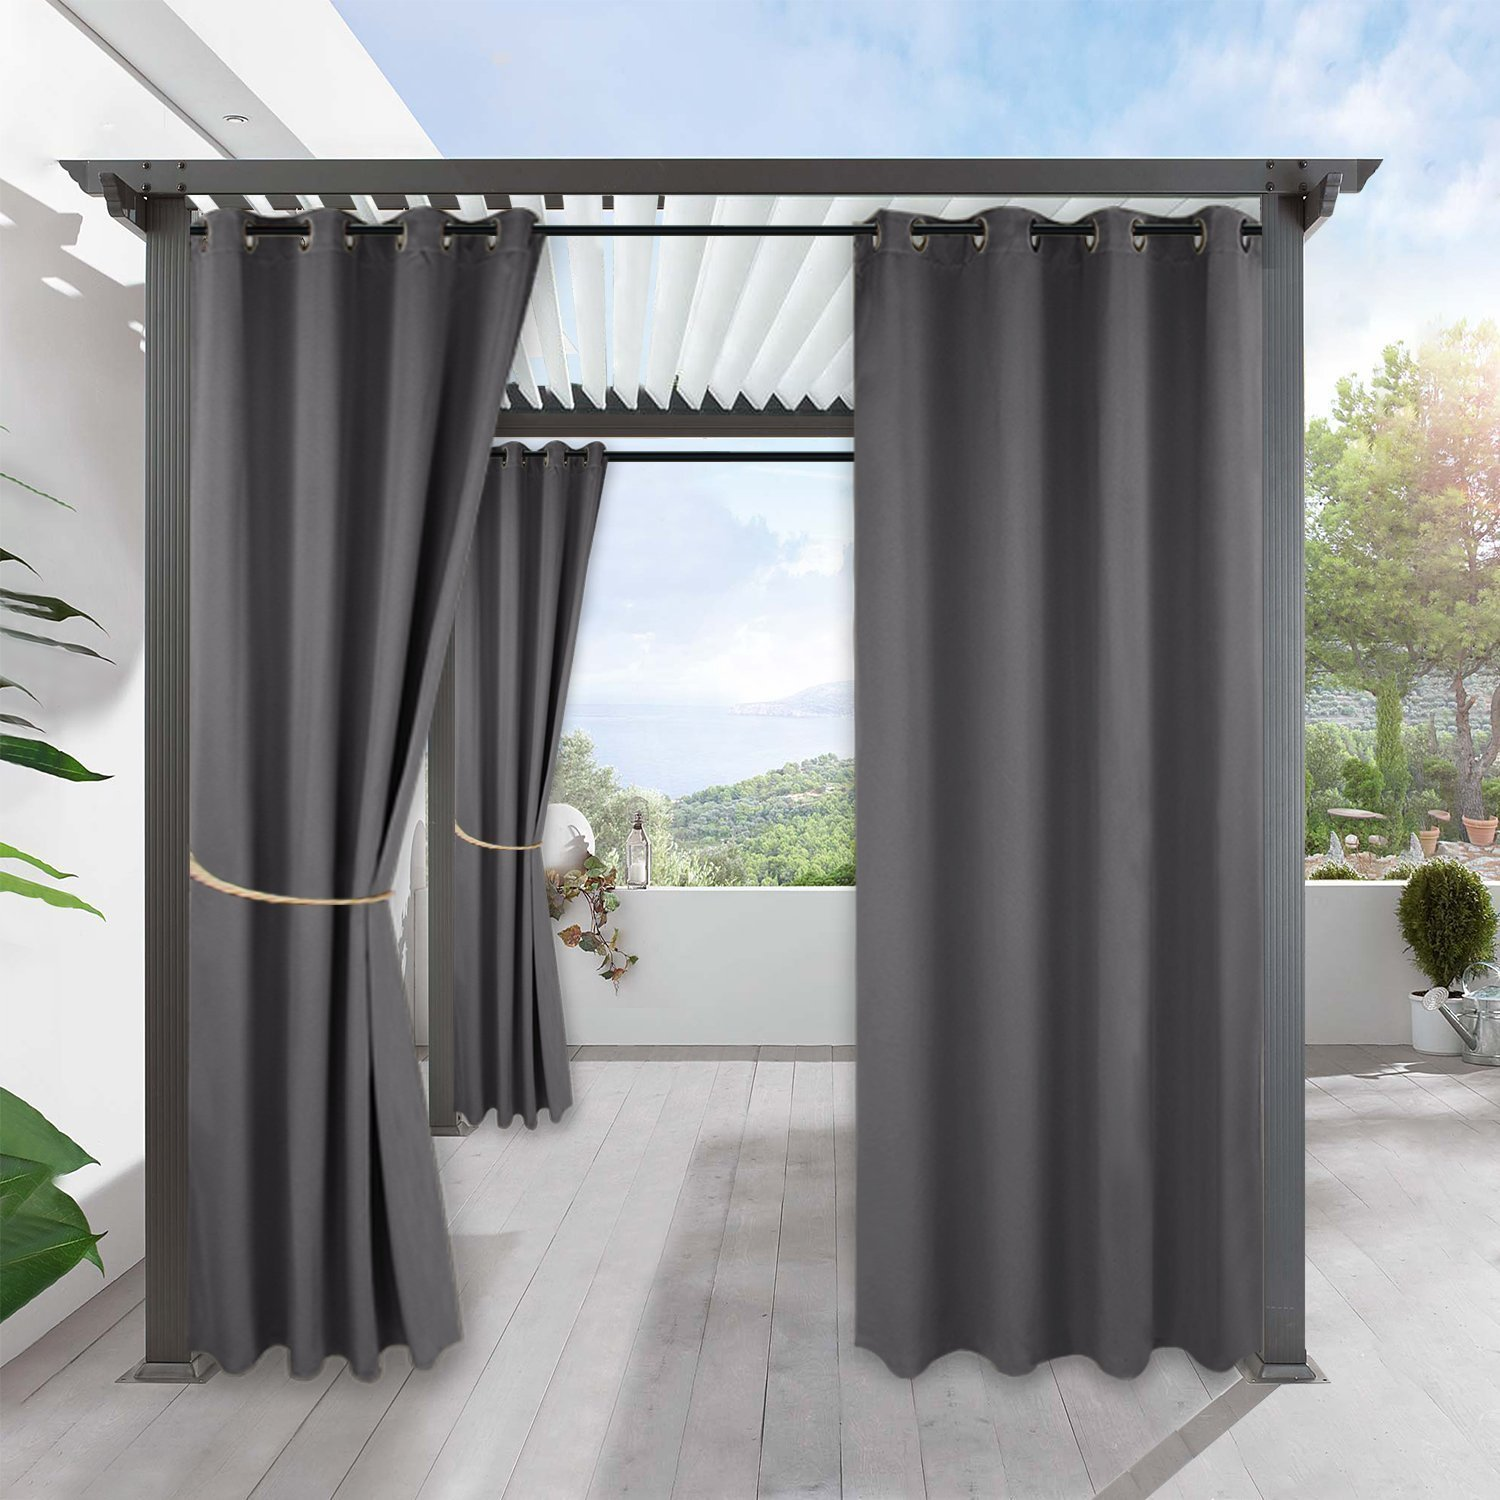 Swell Ryb Home Weatherproof Outdoor Curtain Indoor Outdoor Patio Curtain Drape Grommet Curtains Waterproof Windproof Privacy Drapes For Front Door Home Interior And Landscaping Oversignezvosmurscom